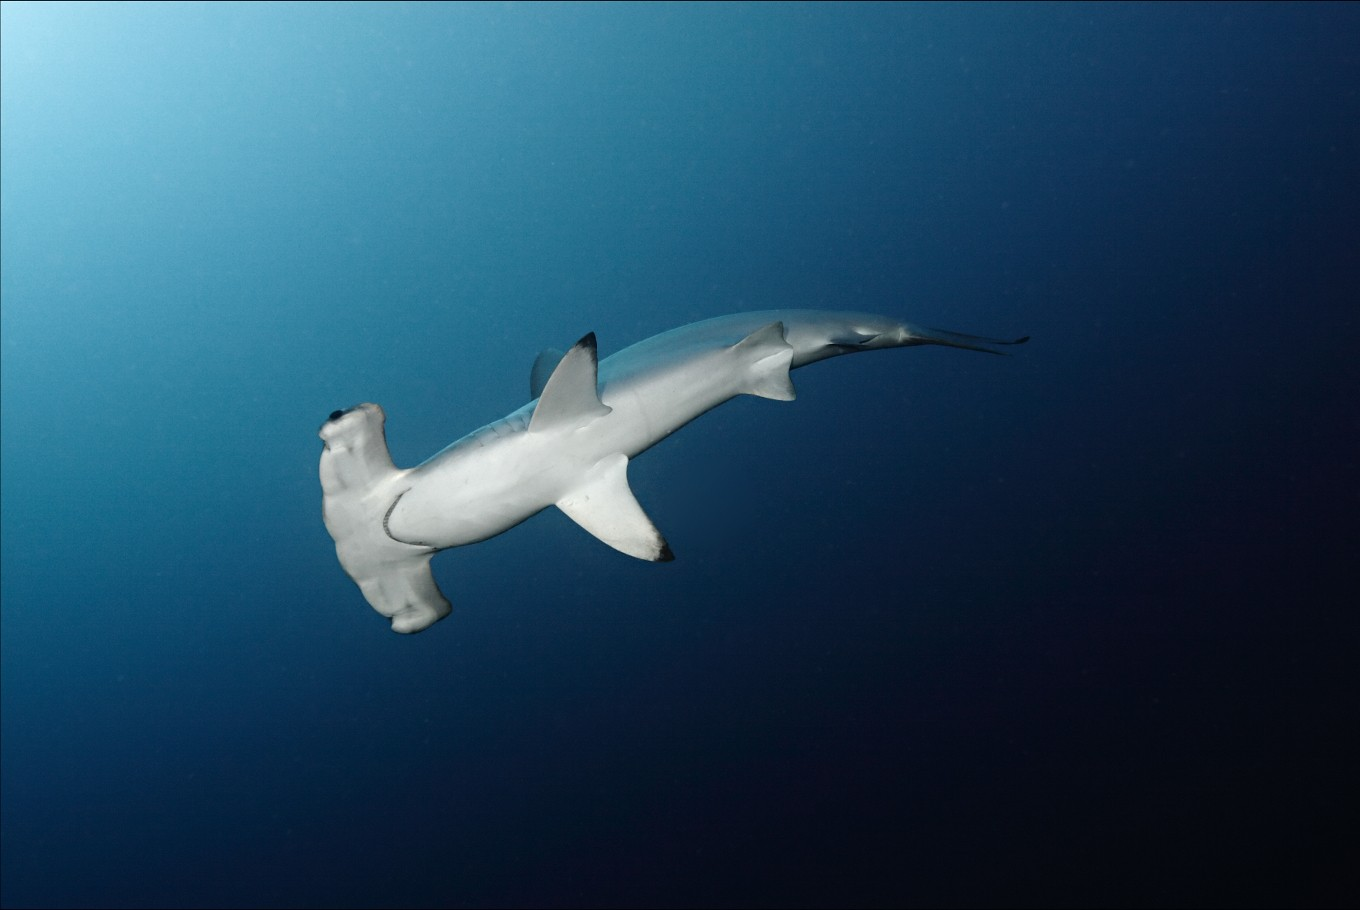 Sharks feel the love as nations push protection of marine species